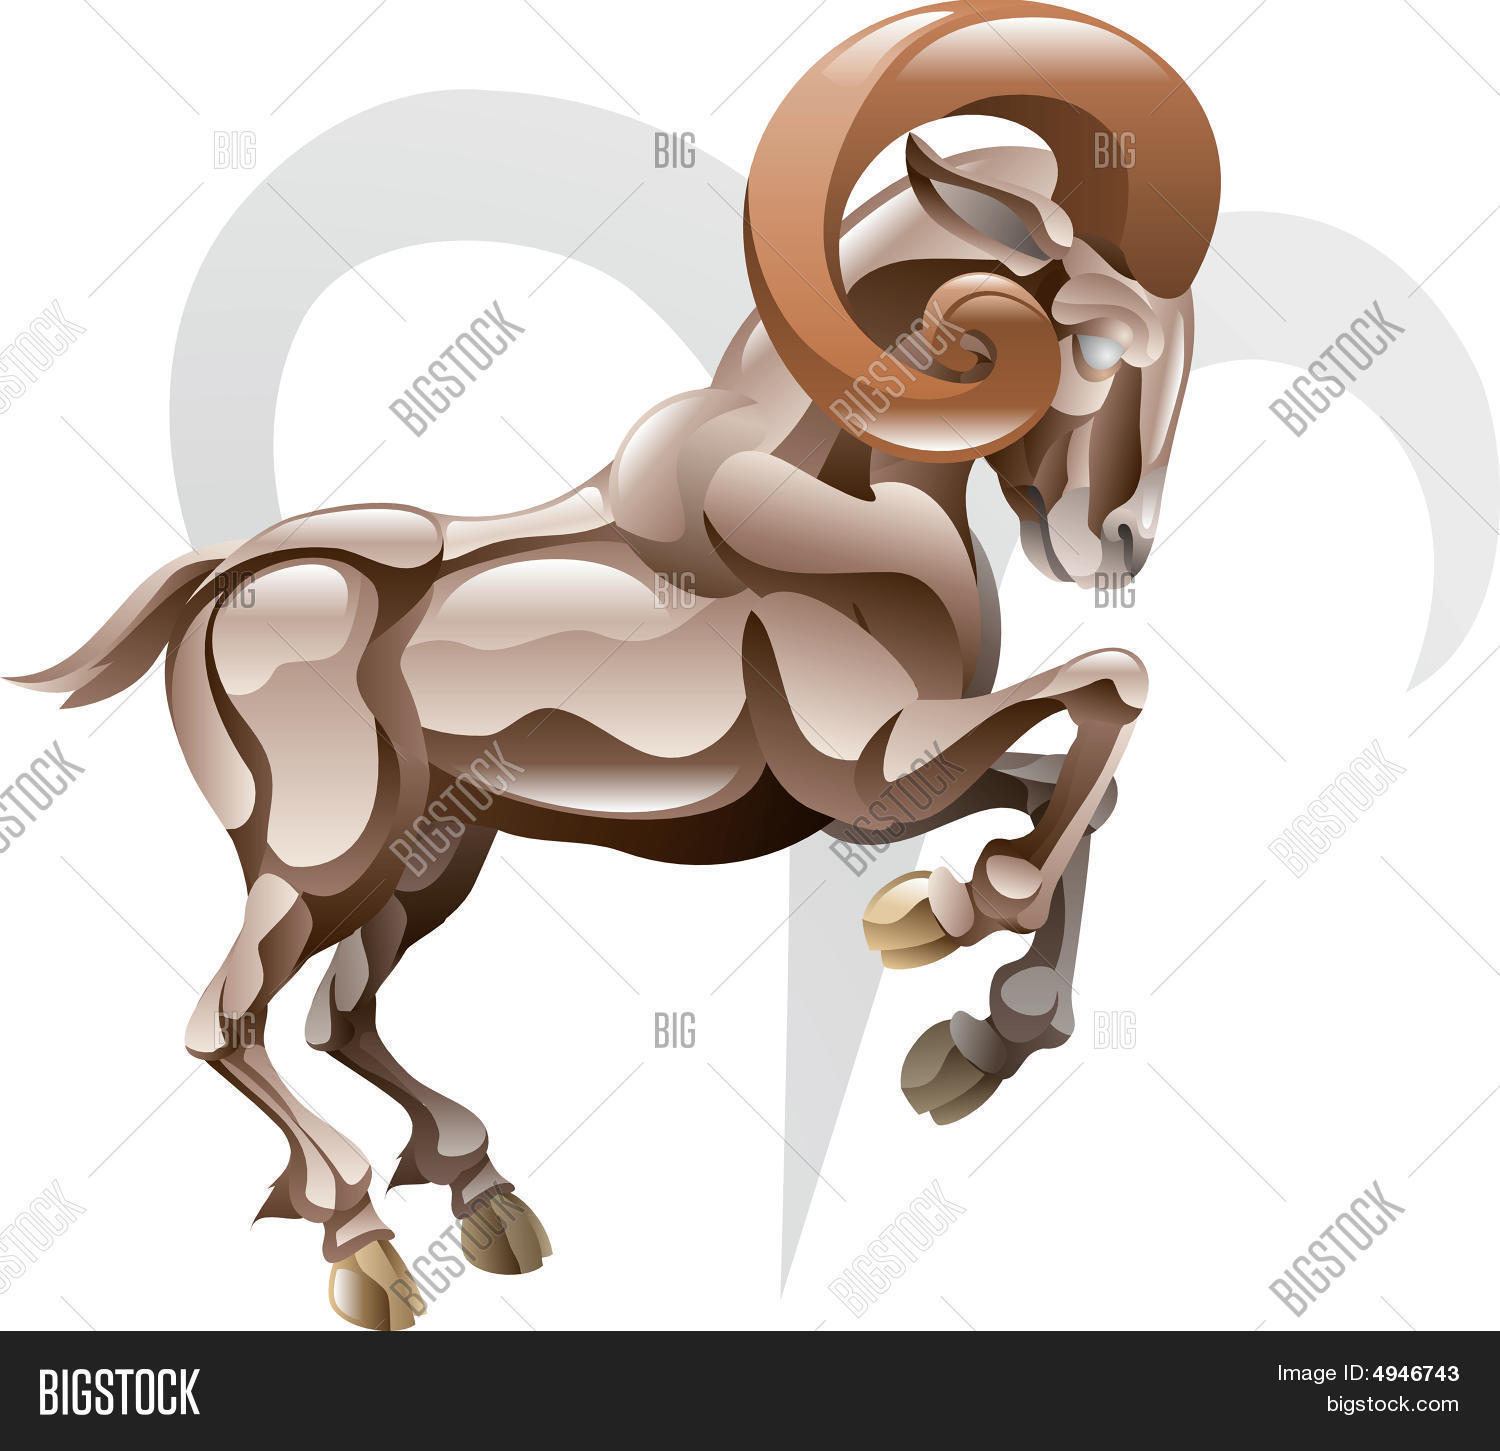 Aries Ram Star Sign Vector Photo Free Trial Bigstock